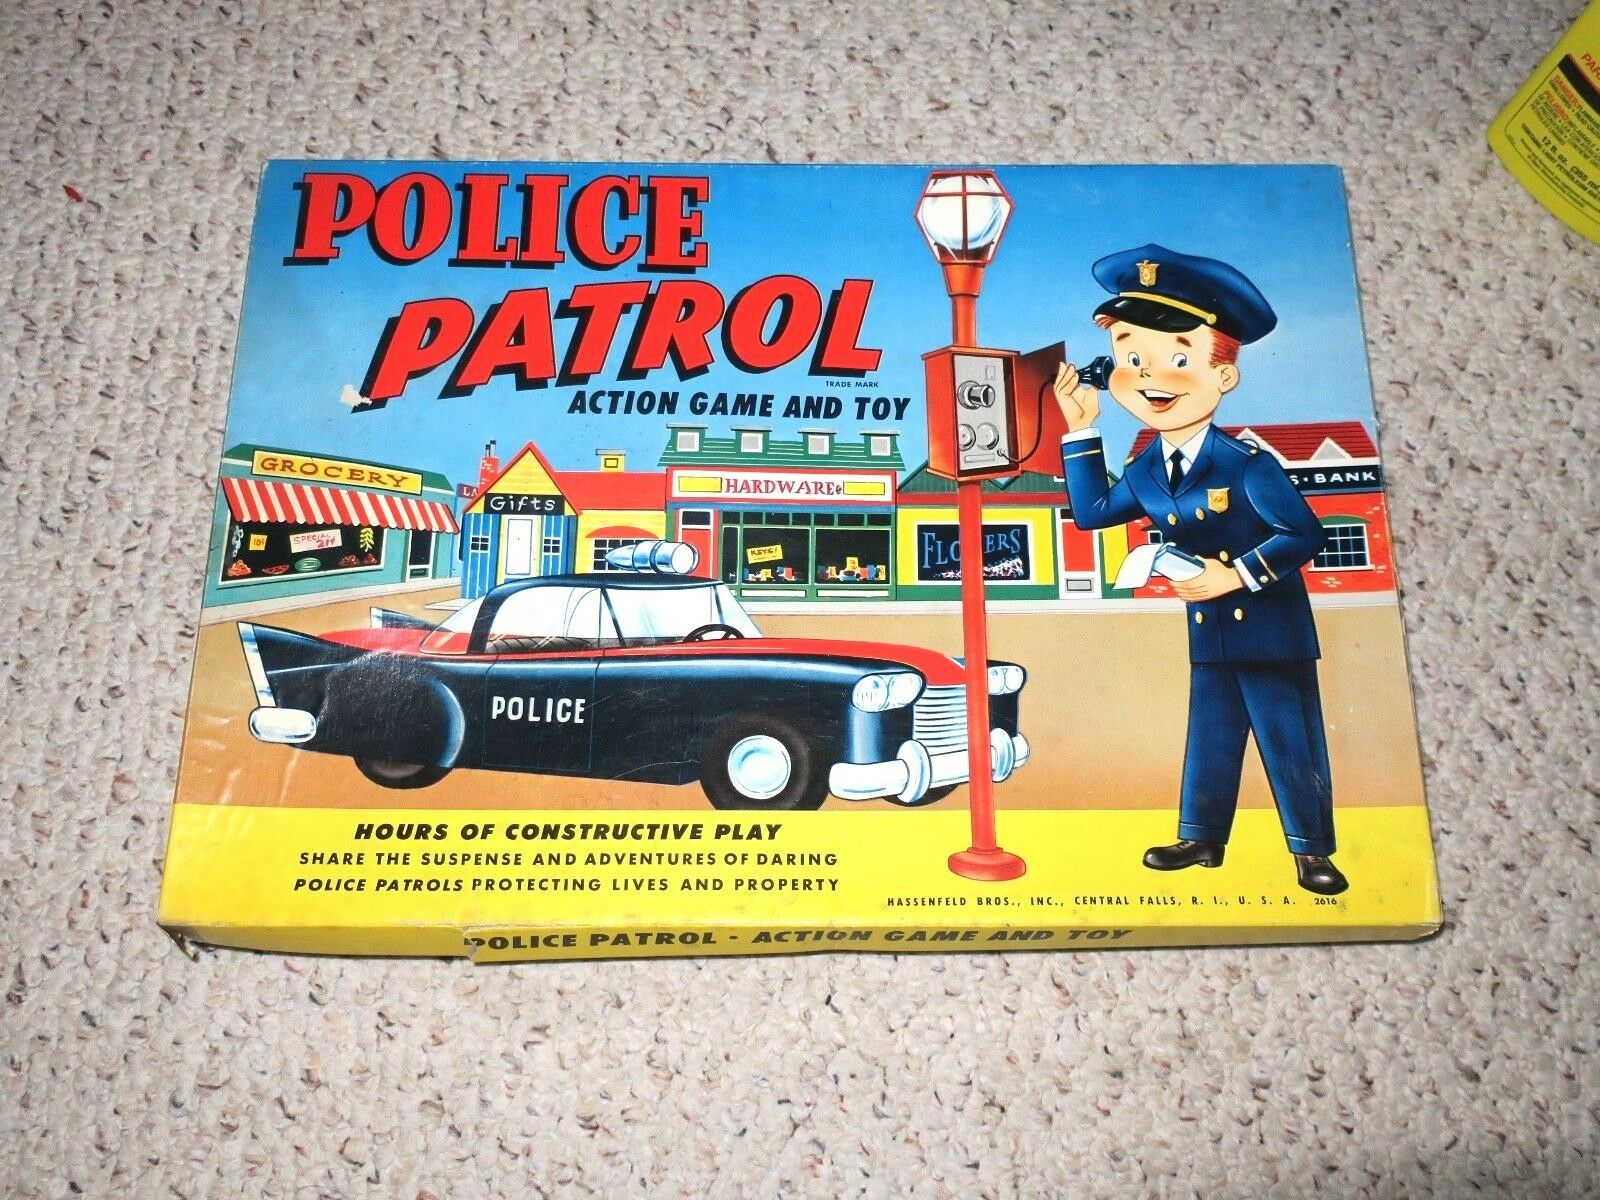 1958 Police Patrol Action Game Game Game & Toy Game Hassefeld Bros (Hasbro) RARE Complete b55e9b